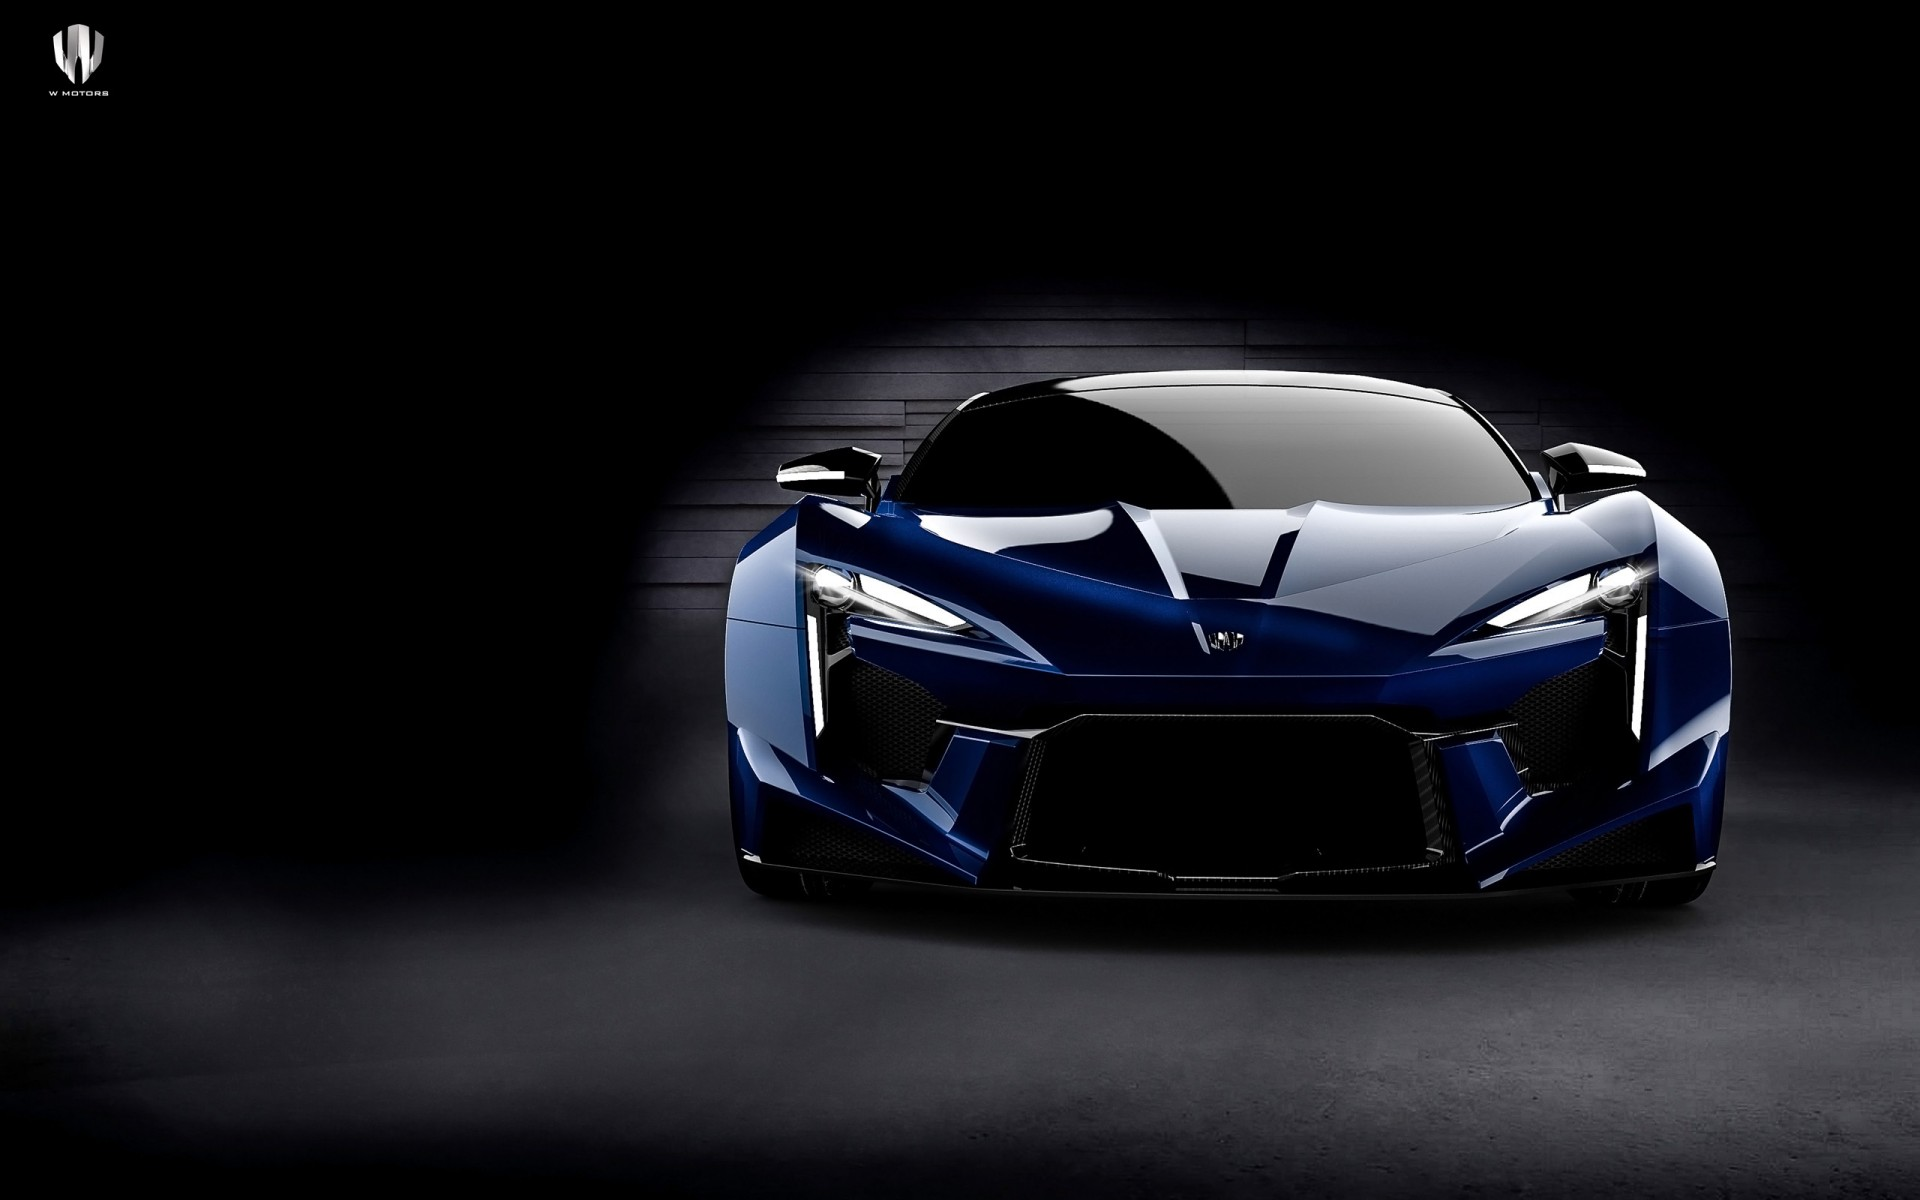 Car Wallpapers 4k Bentely 2016 W Motors Fenyr Supersport Wallpaper Hd Car